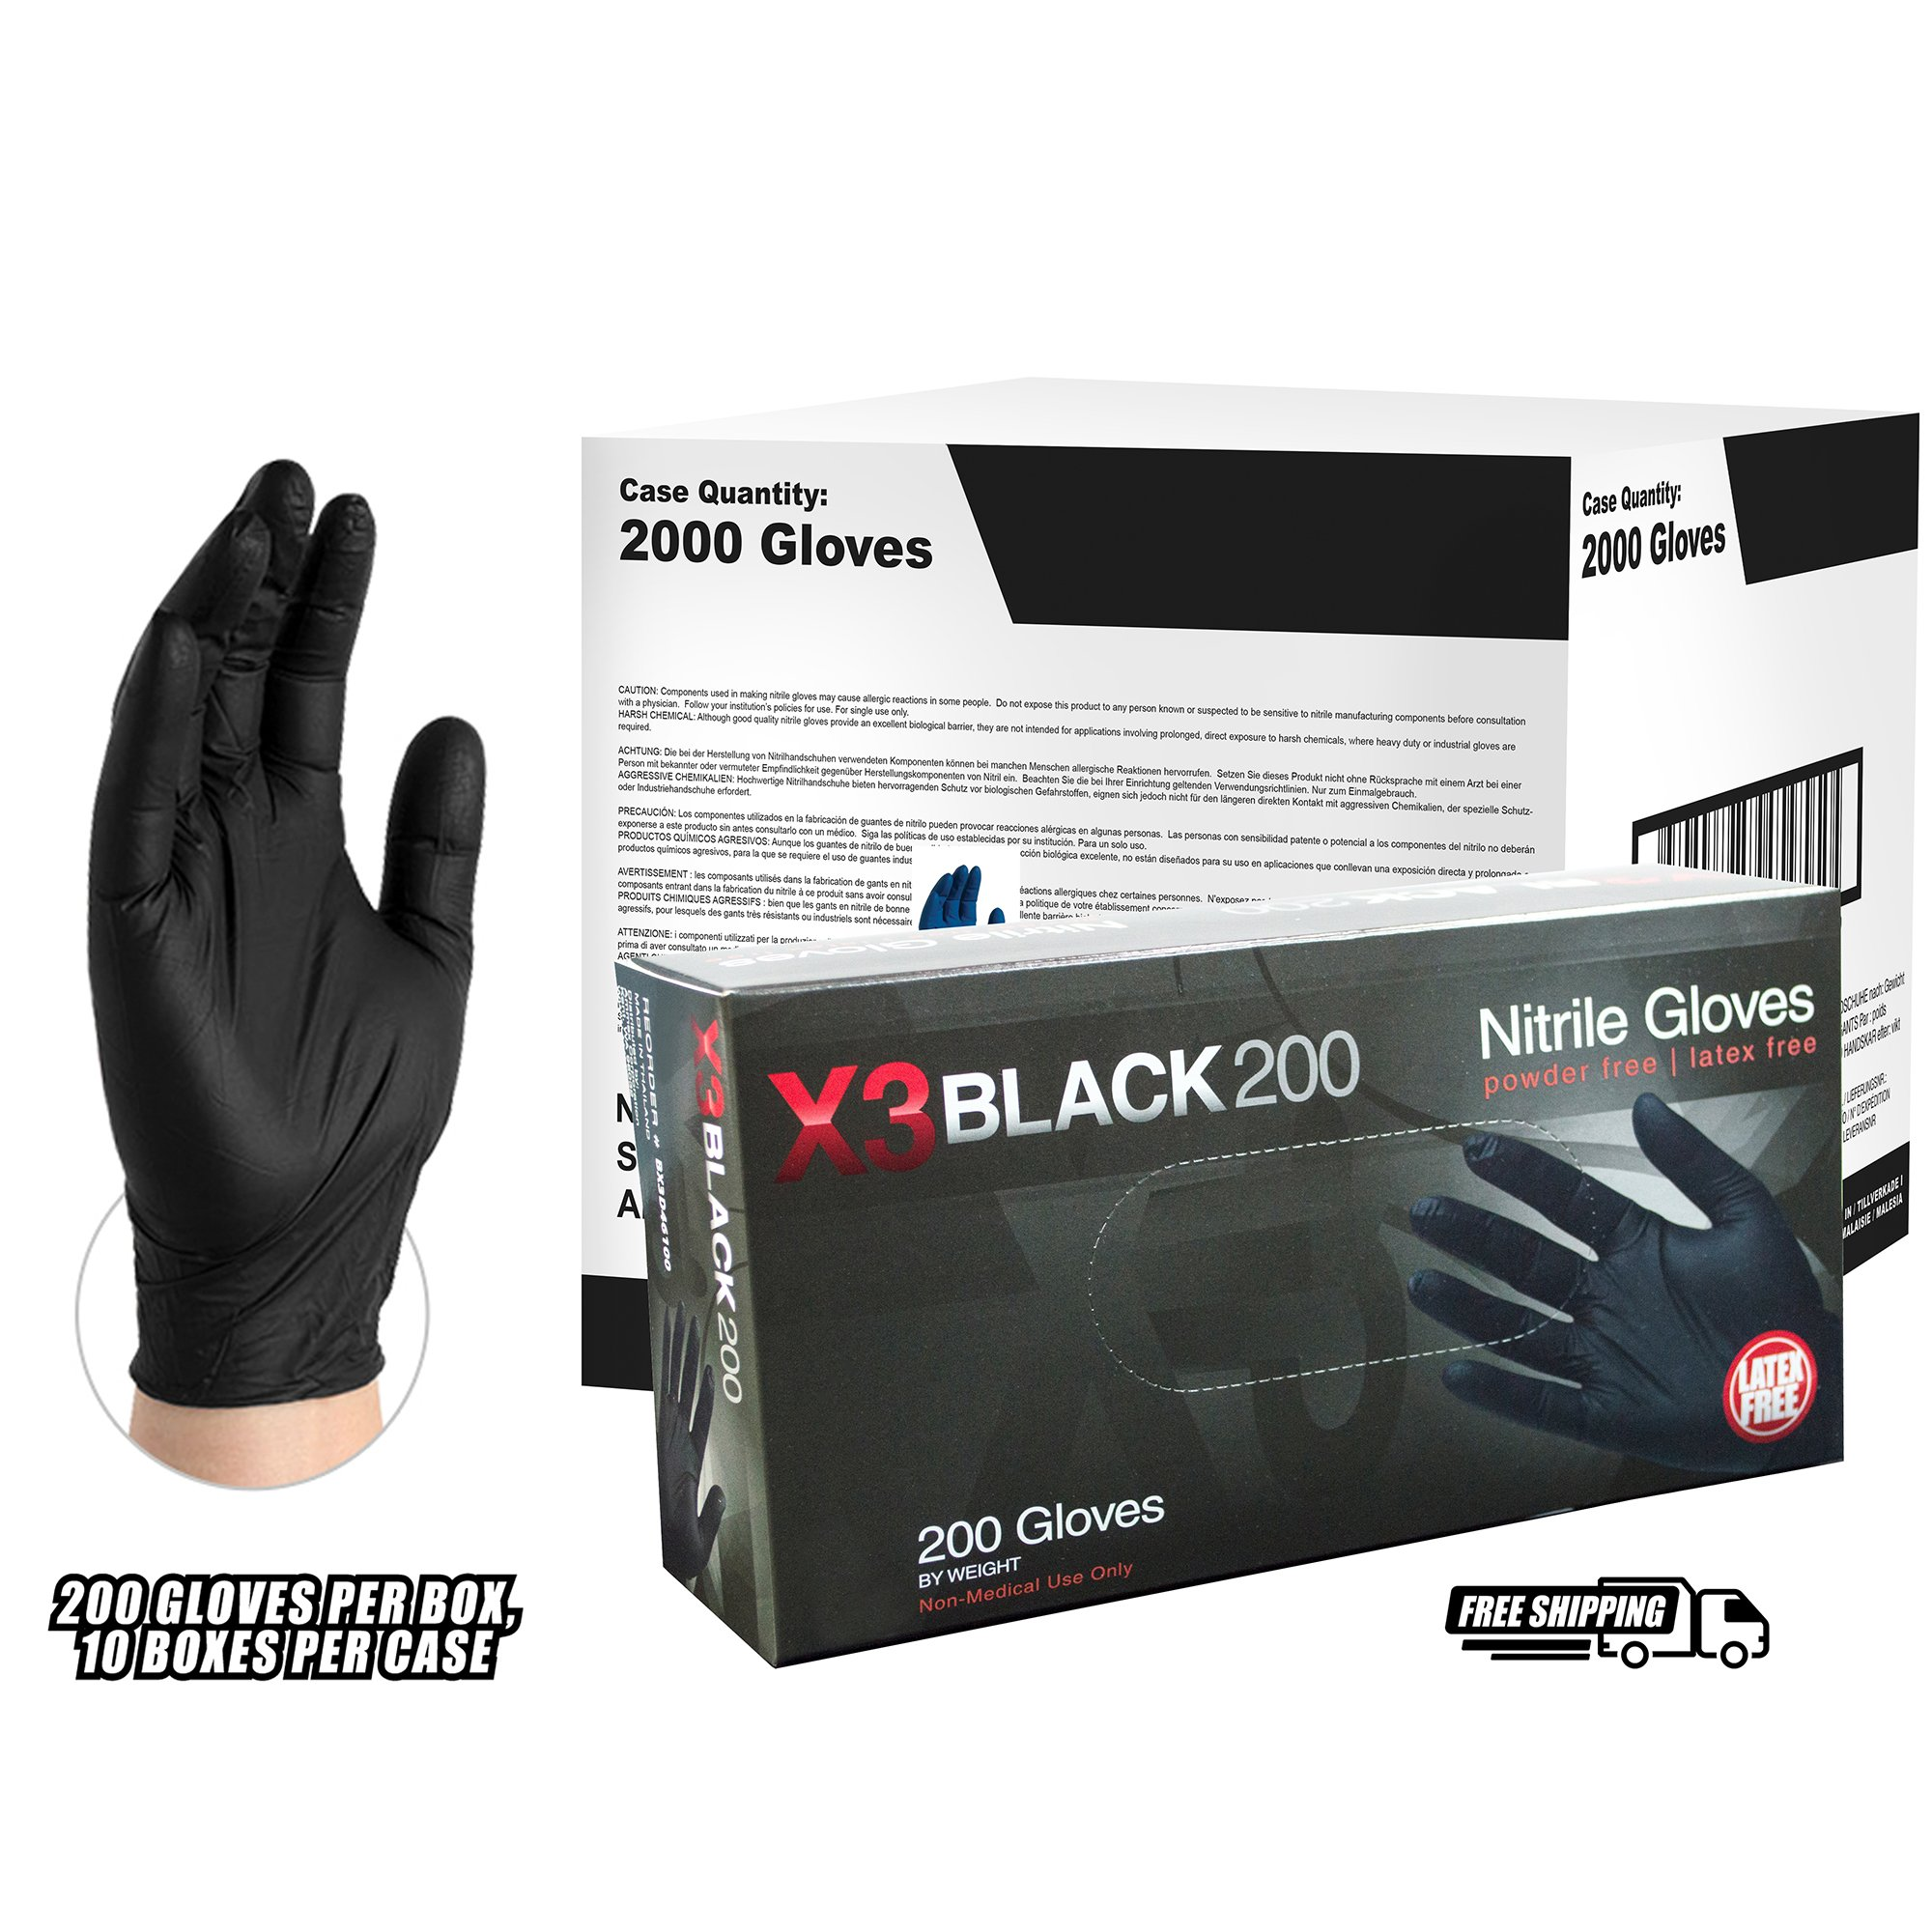 AMMEX - BX3D42100 - Nitrile Gloves - Disposable, Powder Free, Latex Free, 3 mil, Food Safe, Small, Black (Case of 2000)